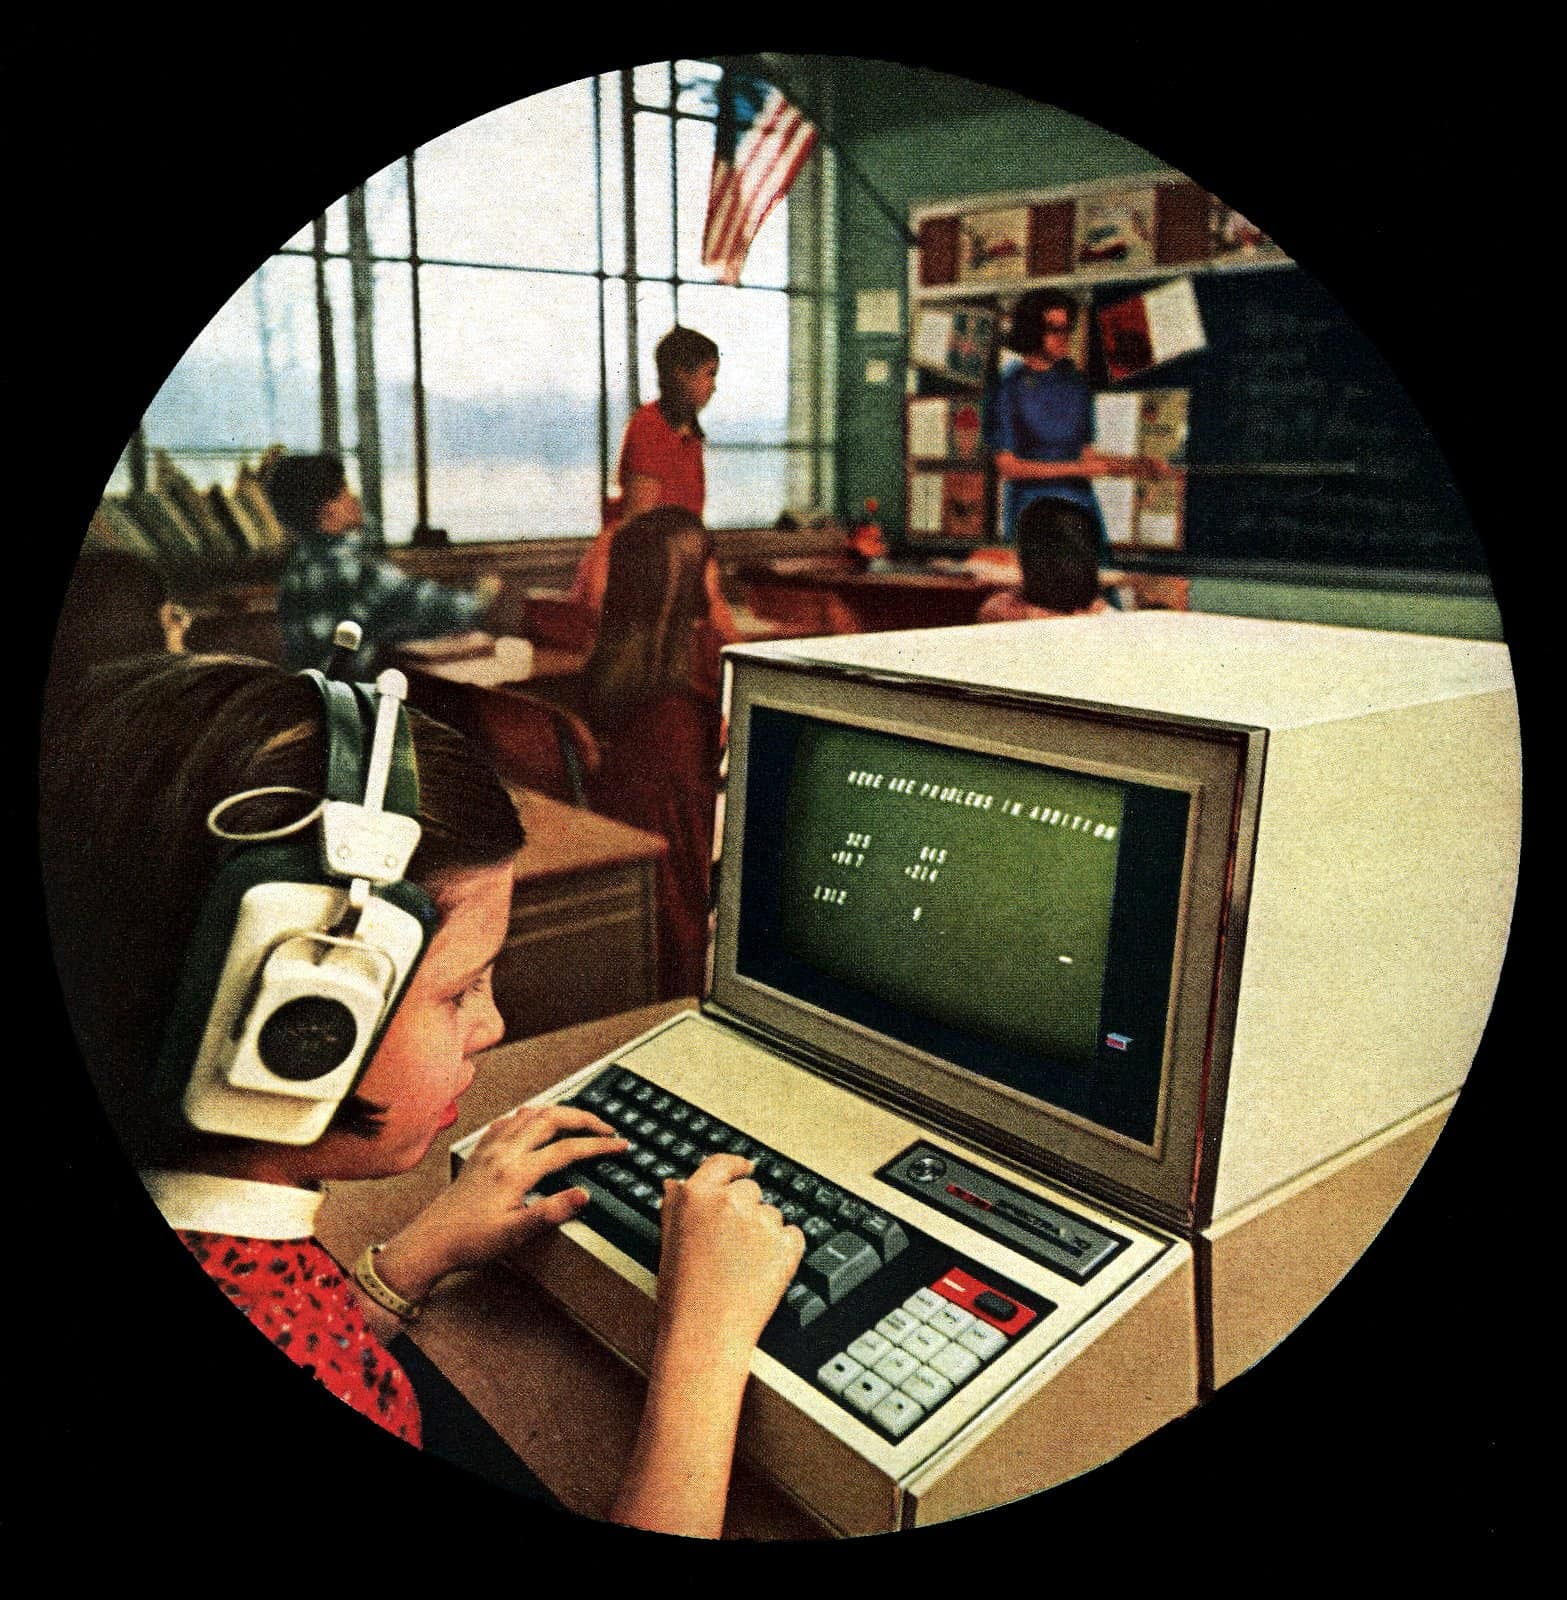 The future of the computer age (1969)